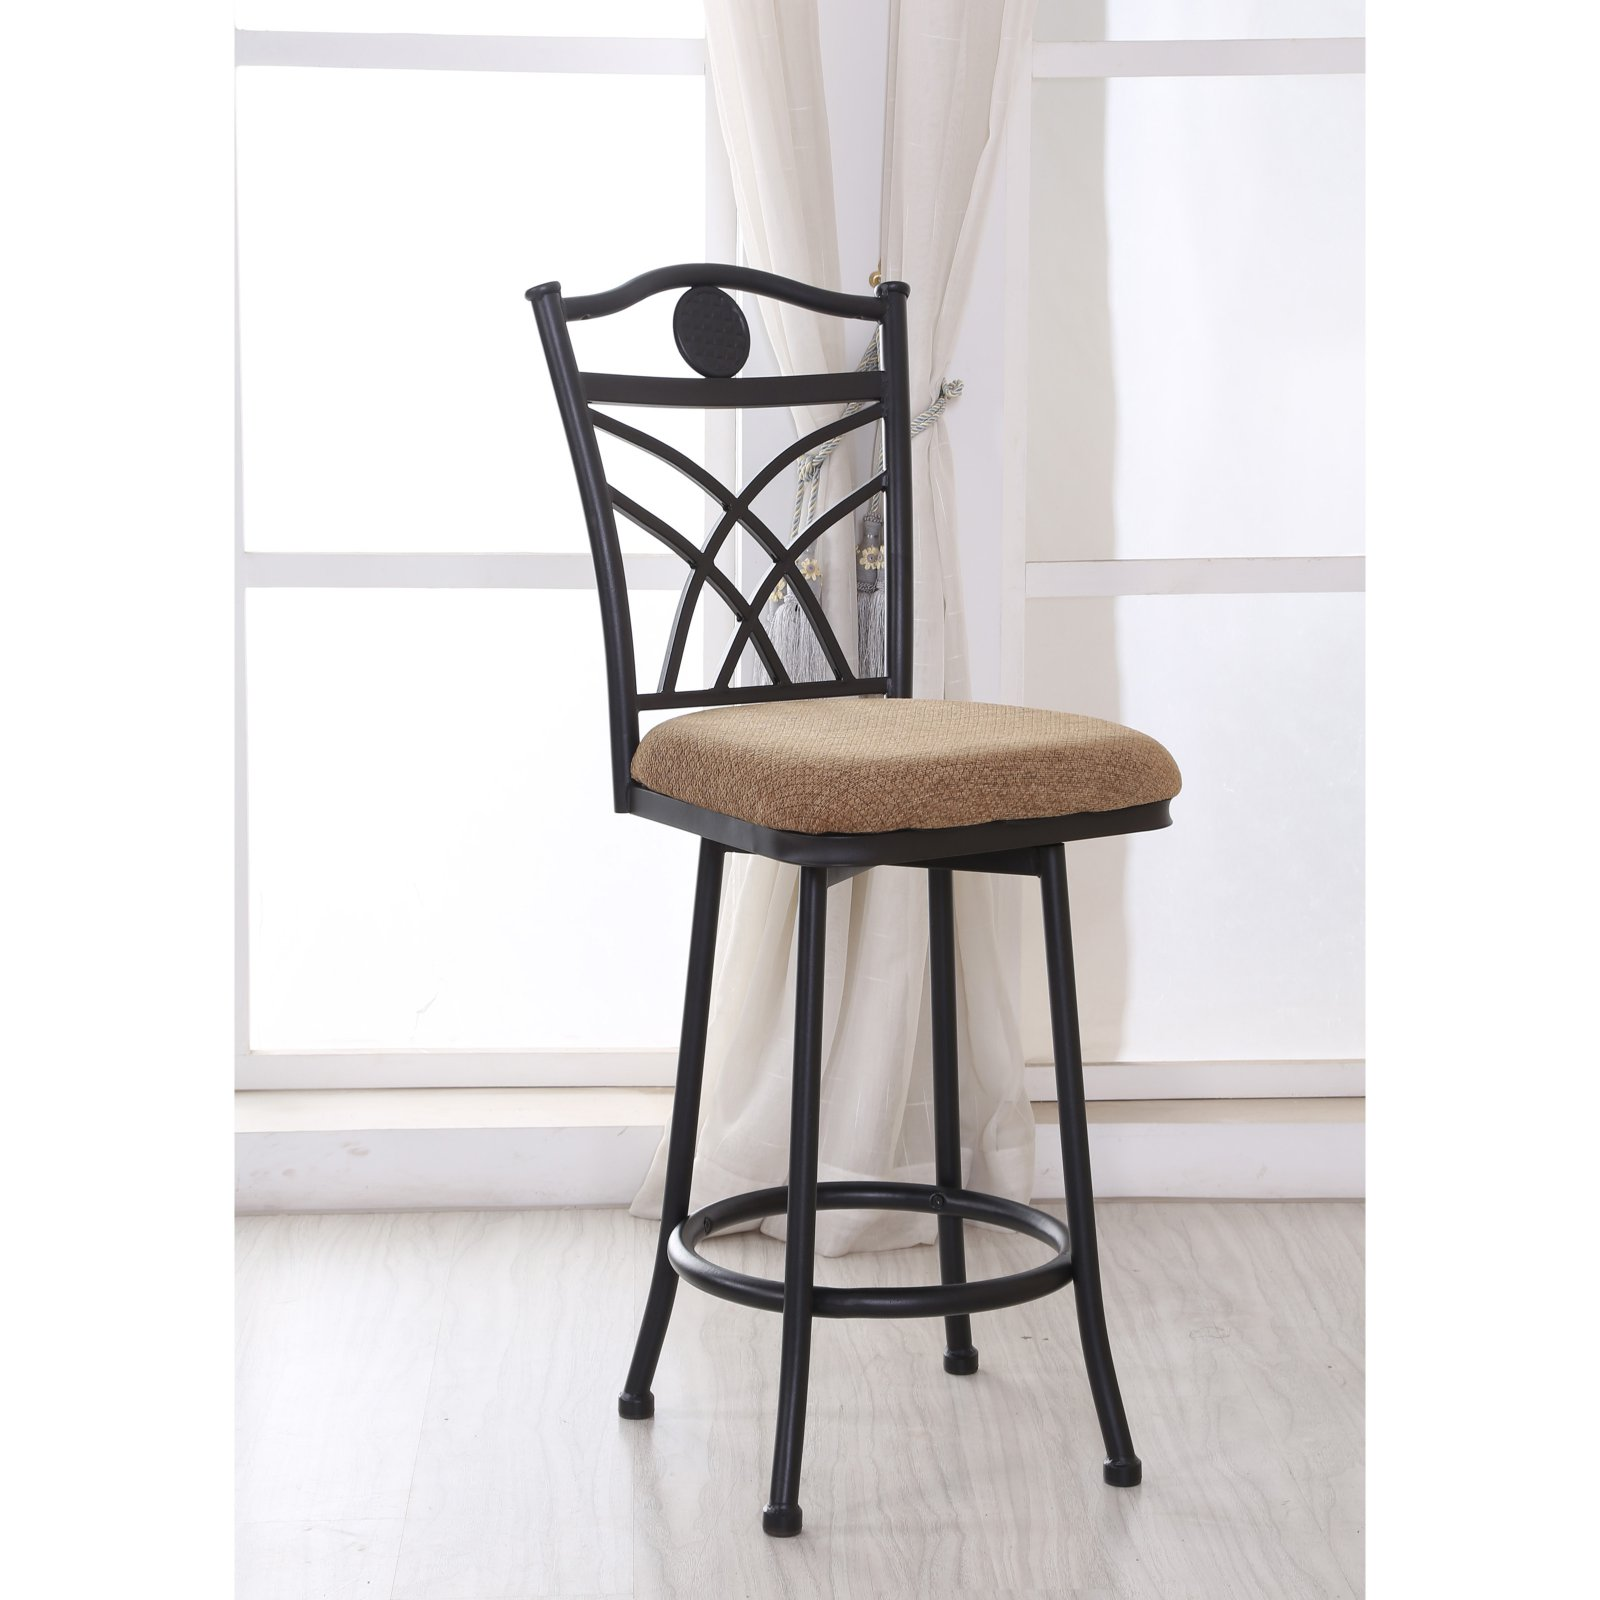 Hodedah Imports 24 in. Counter Stool